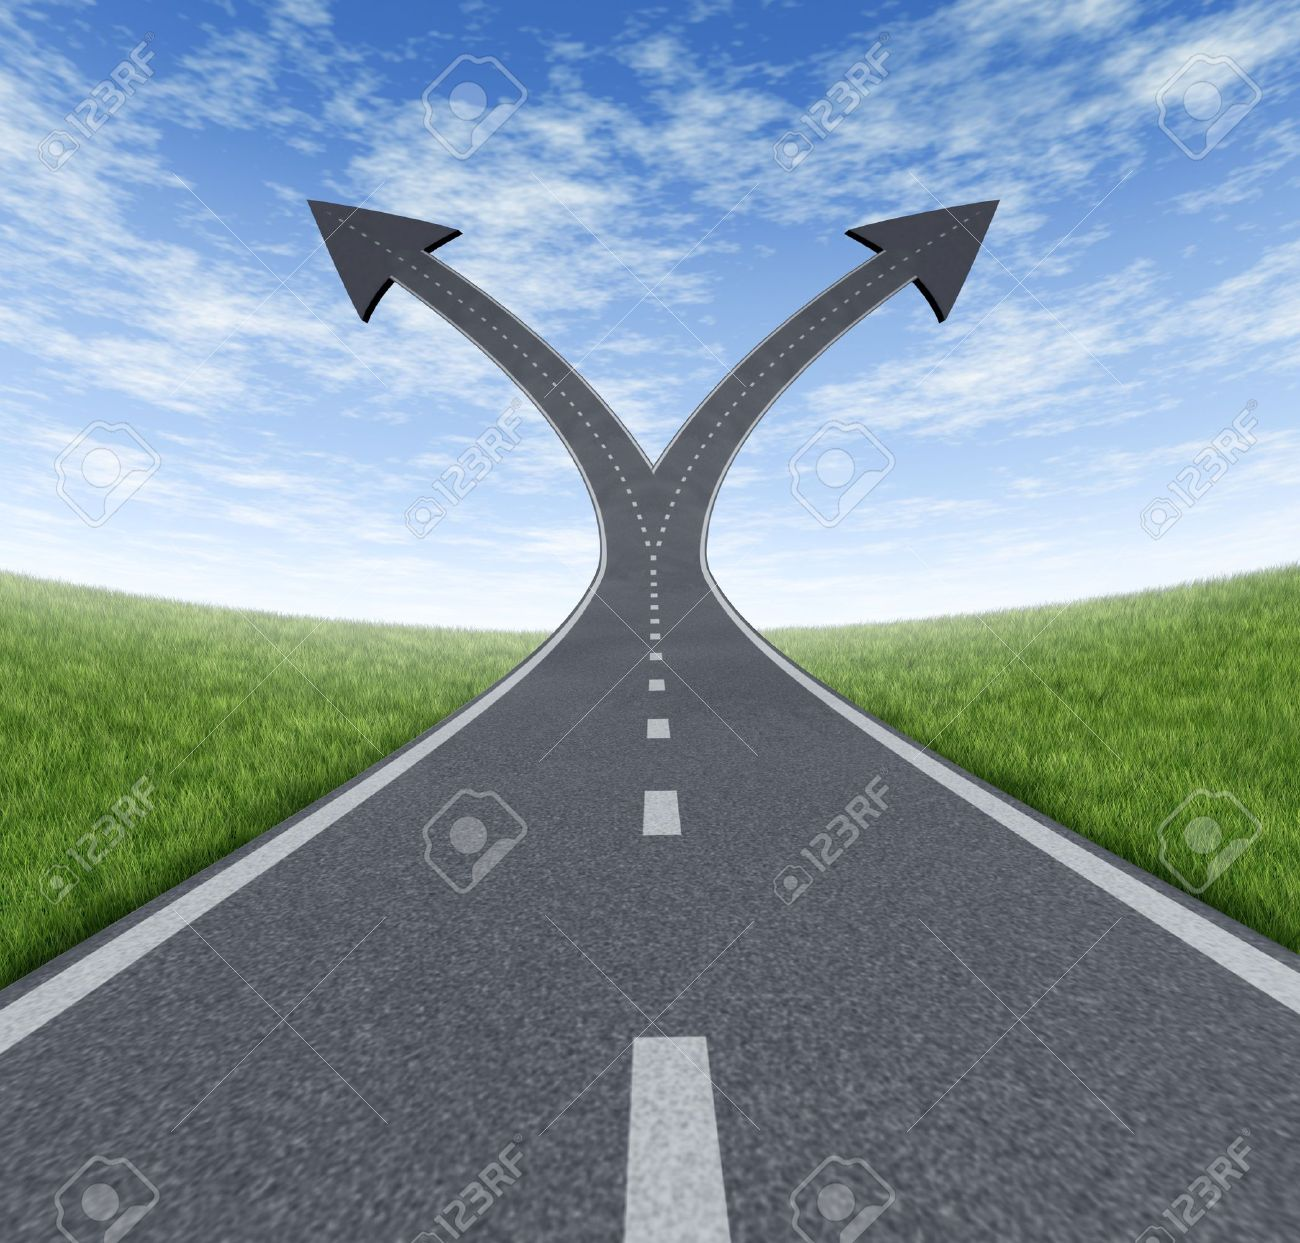 Success decision as a cross roads and upward growth streets in the shape of arrows showing a fork in the path representing the concept of direction when facing two equal or similar options Stock Photo - 13650269